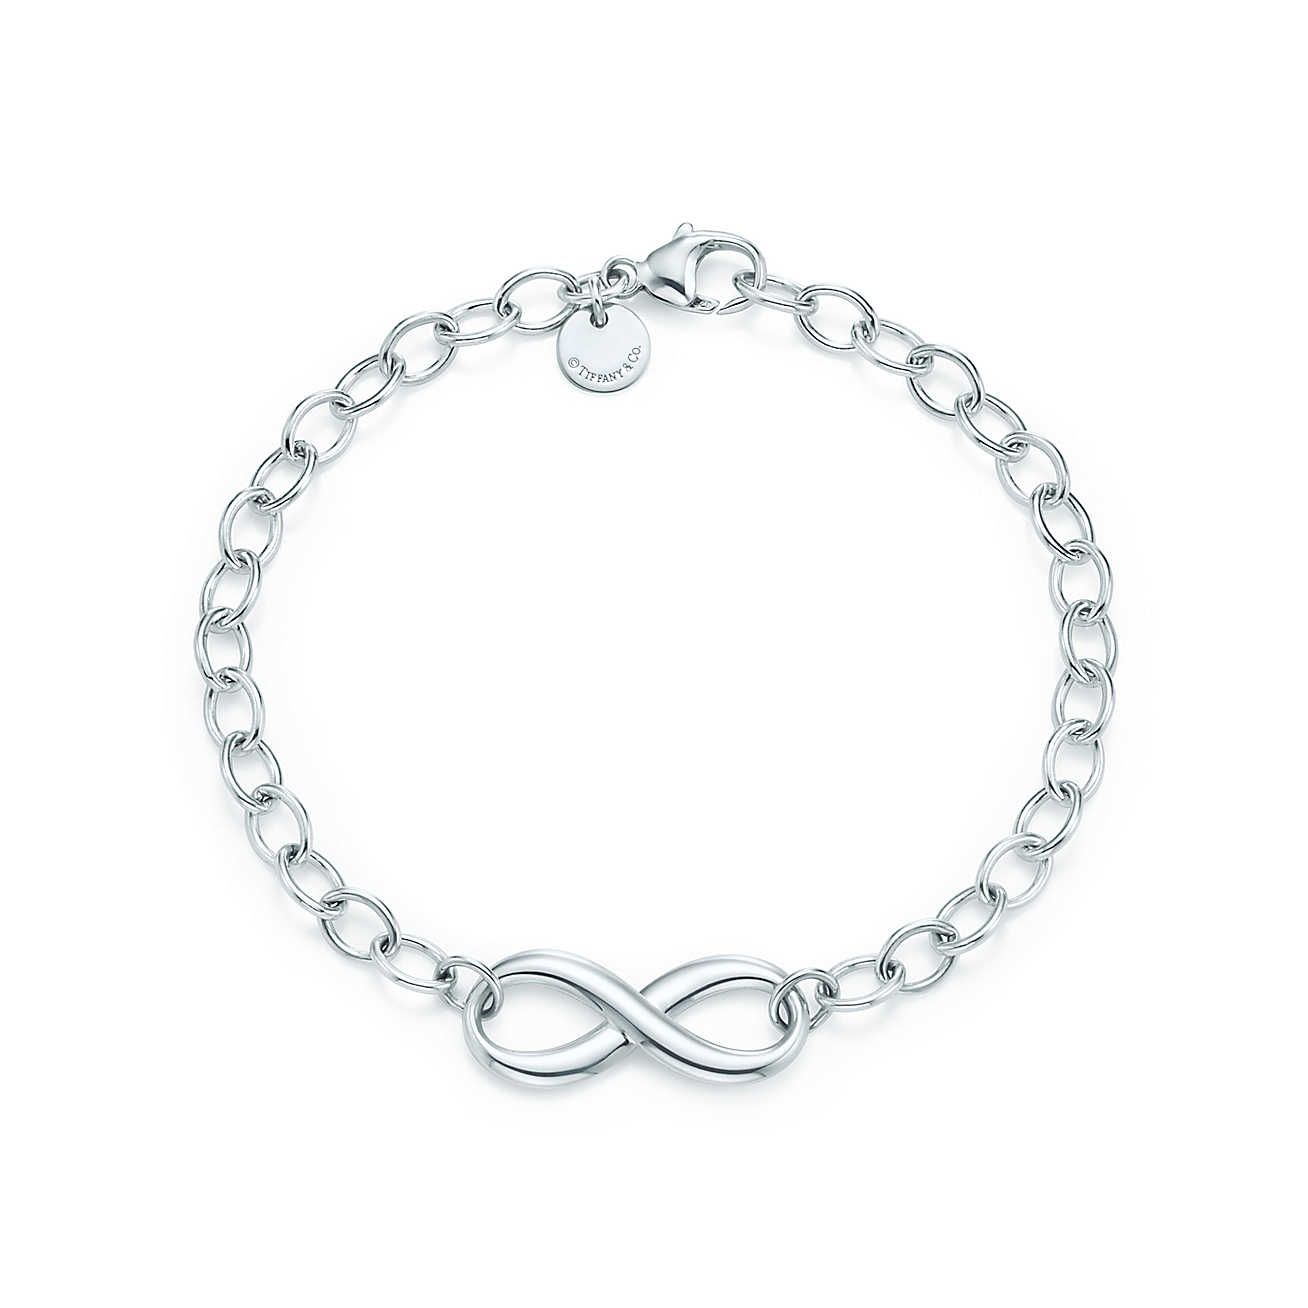 Tiffany infinity bracelet wedding silver bracelets and bracelets